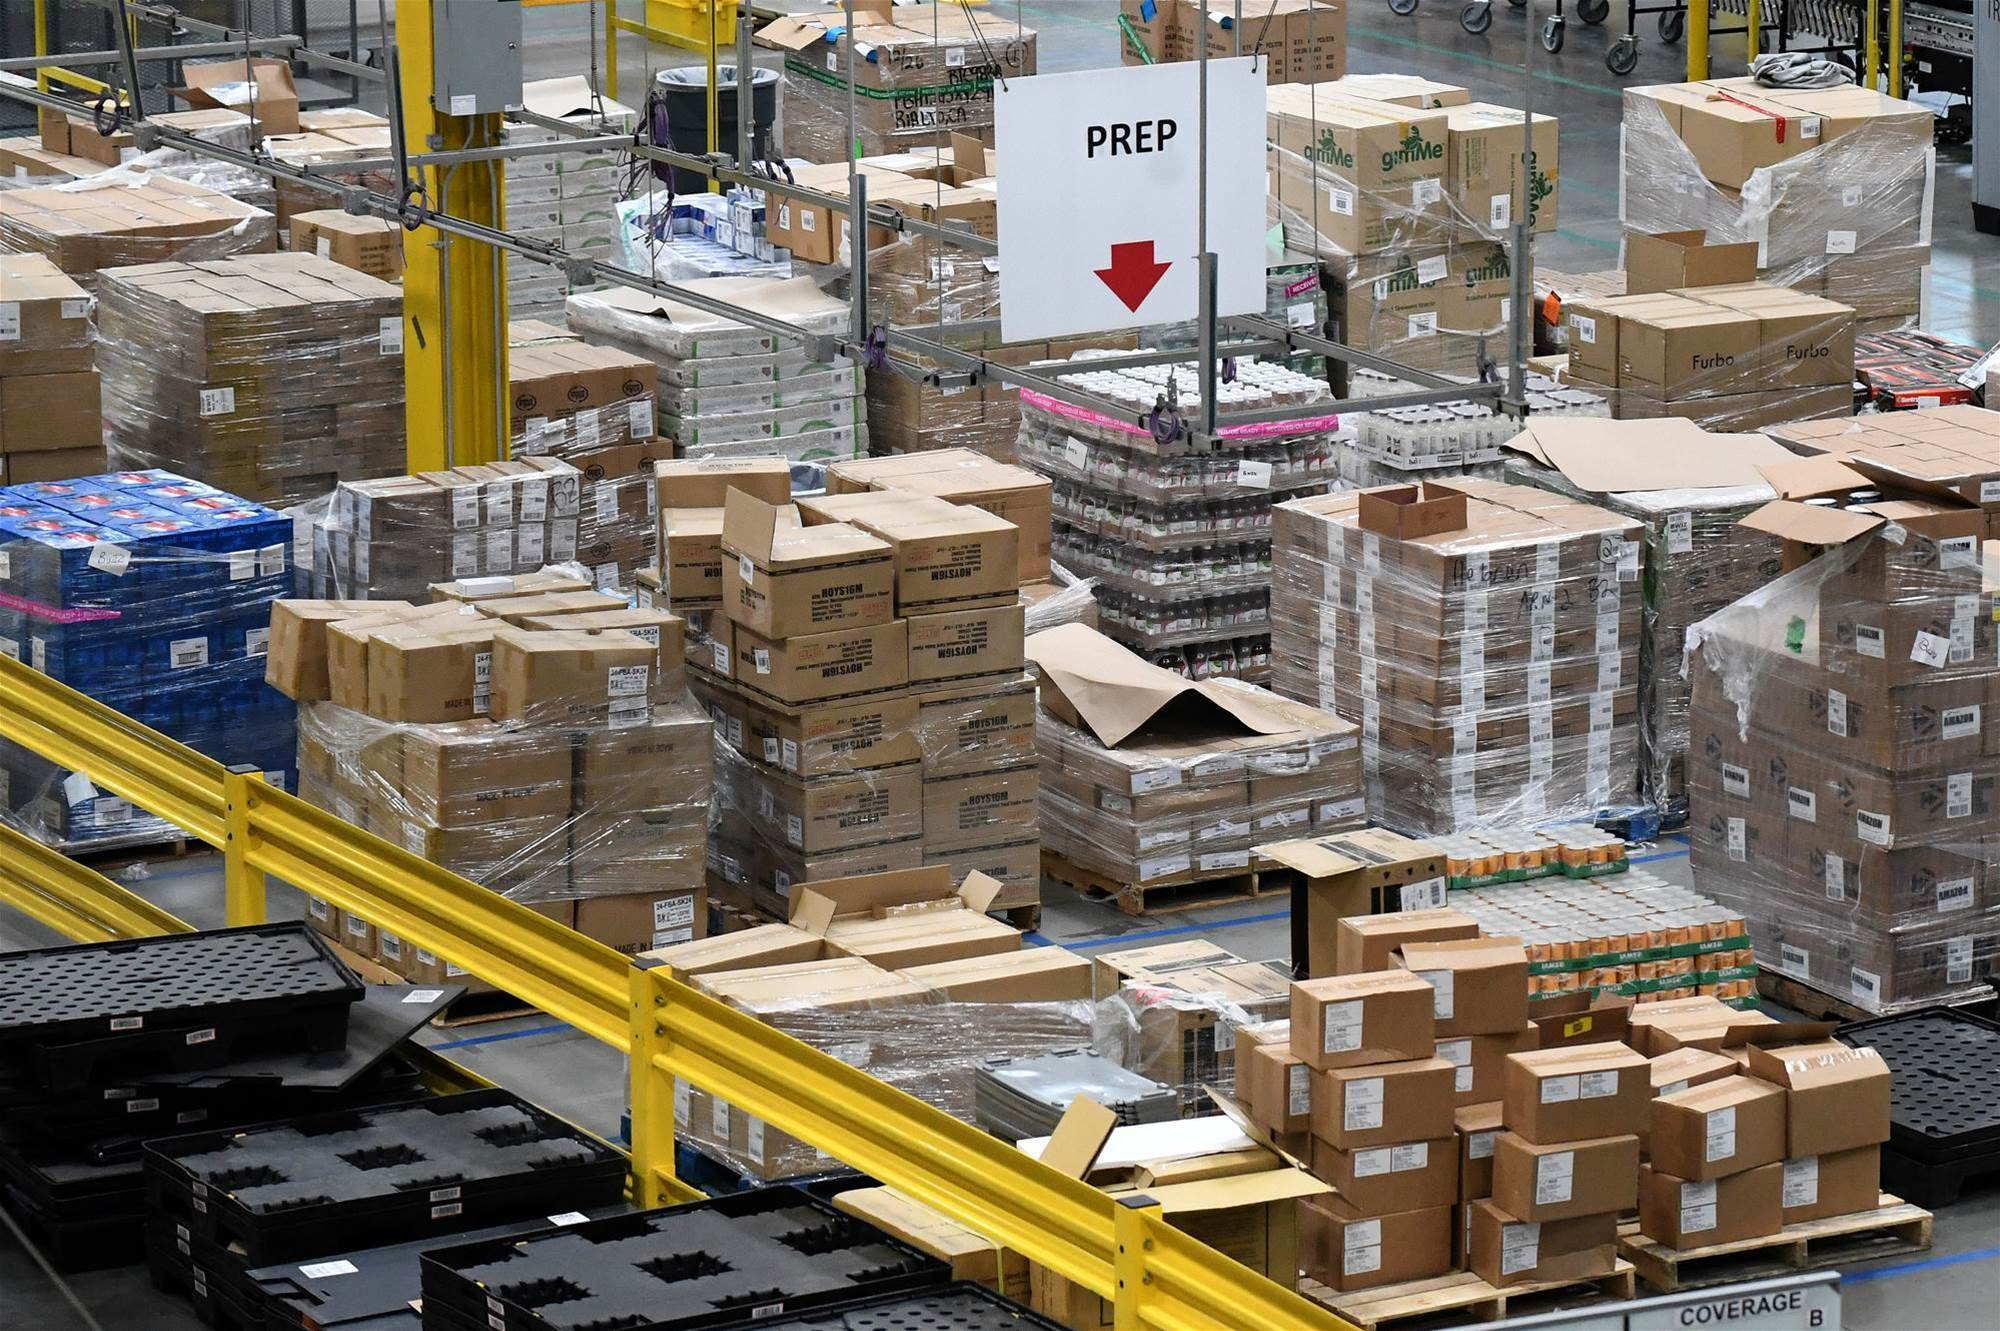 Amazon dismisses idea automation will eliminate all its warehouse jobs soon